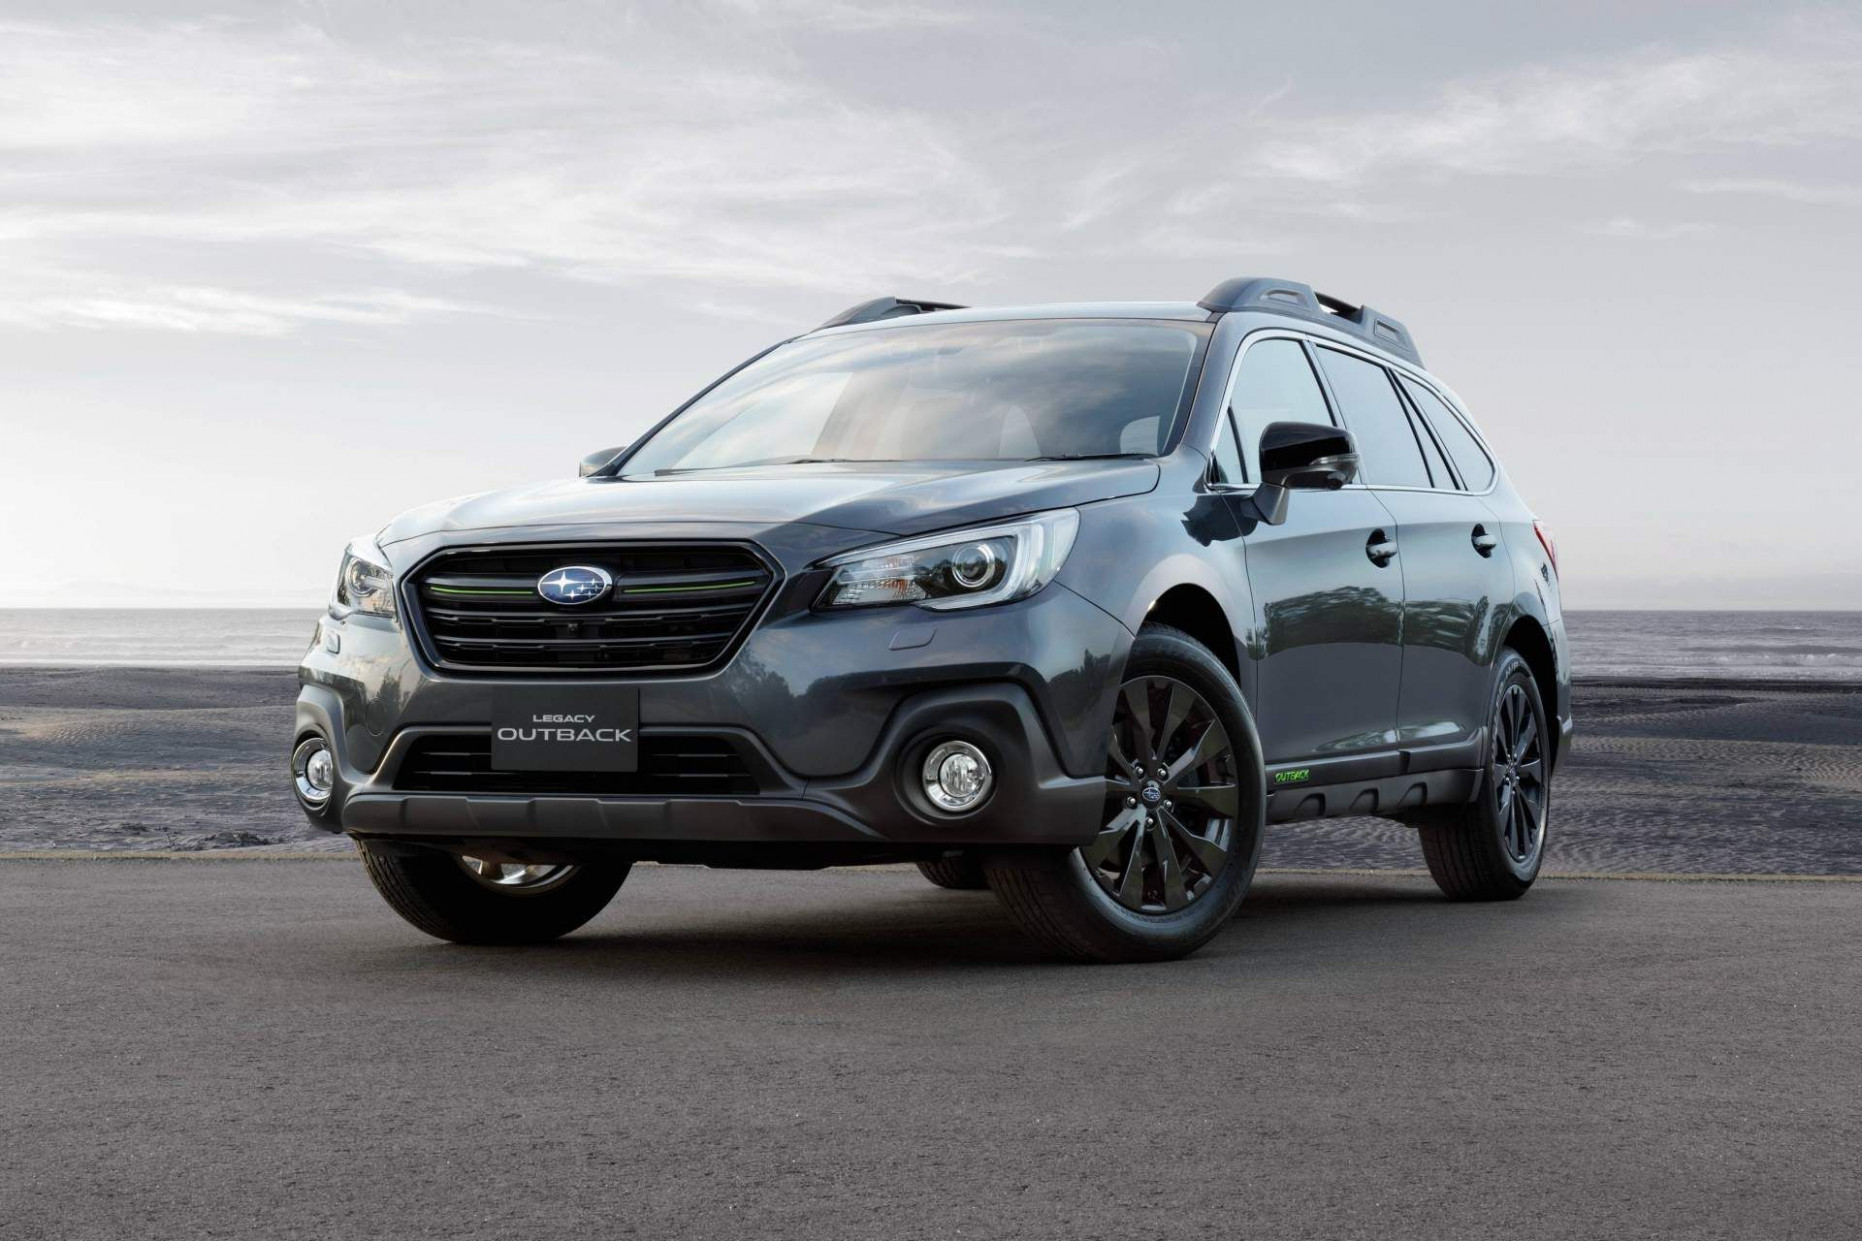 New Subaru Outback Is Coming This Year With 10 Legacy Tech ..